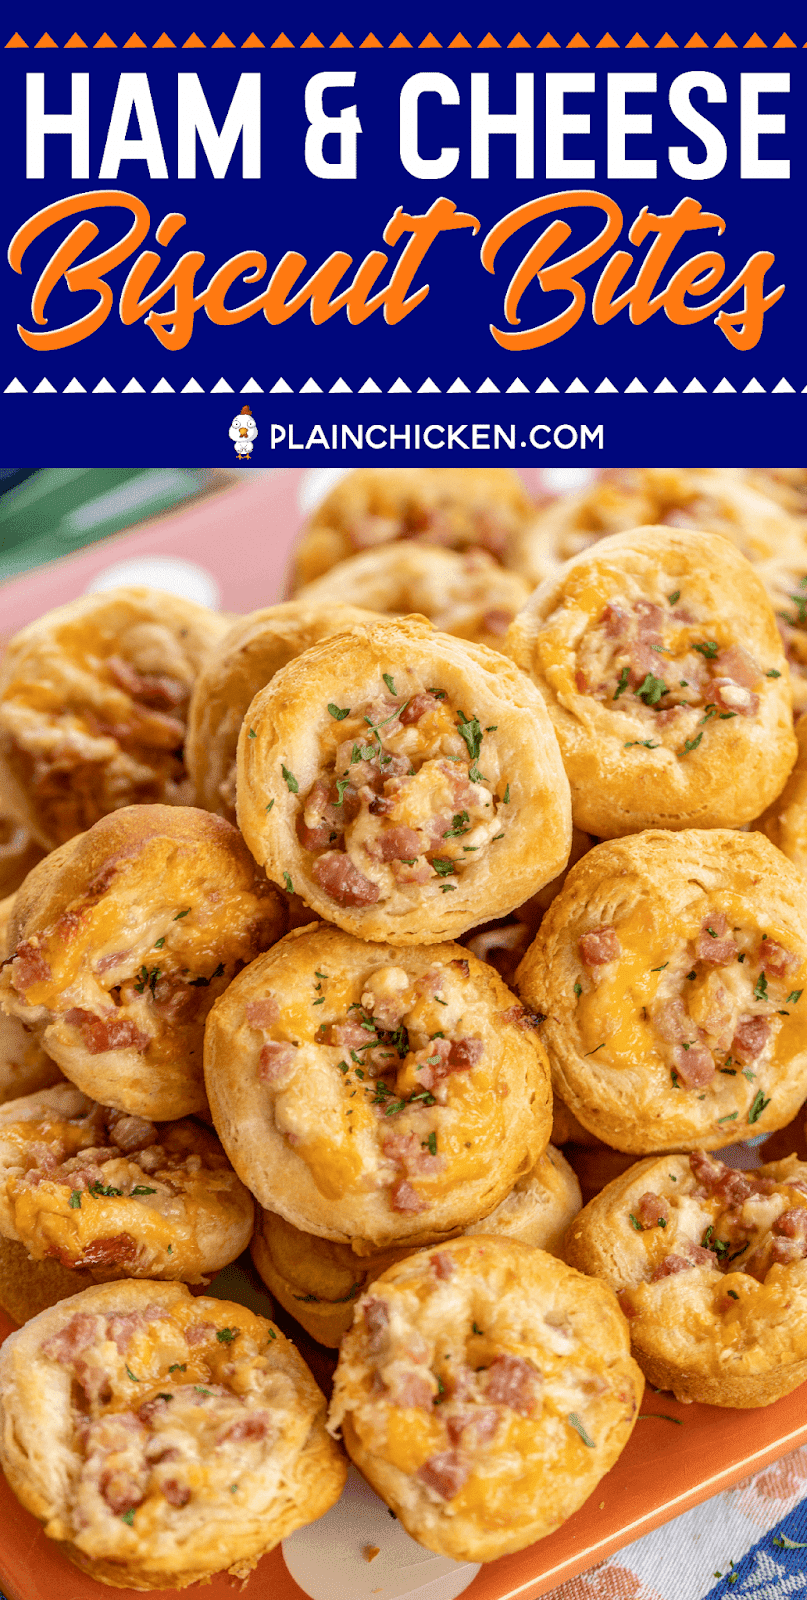 Ham & Cheese Biscuit Bites - OMG! Seriously delicious!! Great for parties and tailgating! Ham, cheddar, swiss, cream cheese, dijon mustard, Worcestershire, brown sugar mixed together and baked in biscuits. I am totally addicted to these! I could not stop eating them! I am already planning on making them again this week! #appetizer #ham #partyfood #tailgating